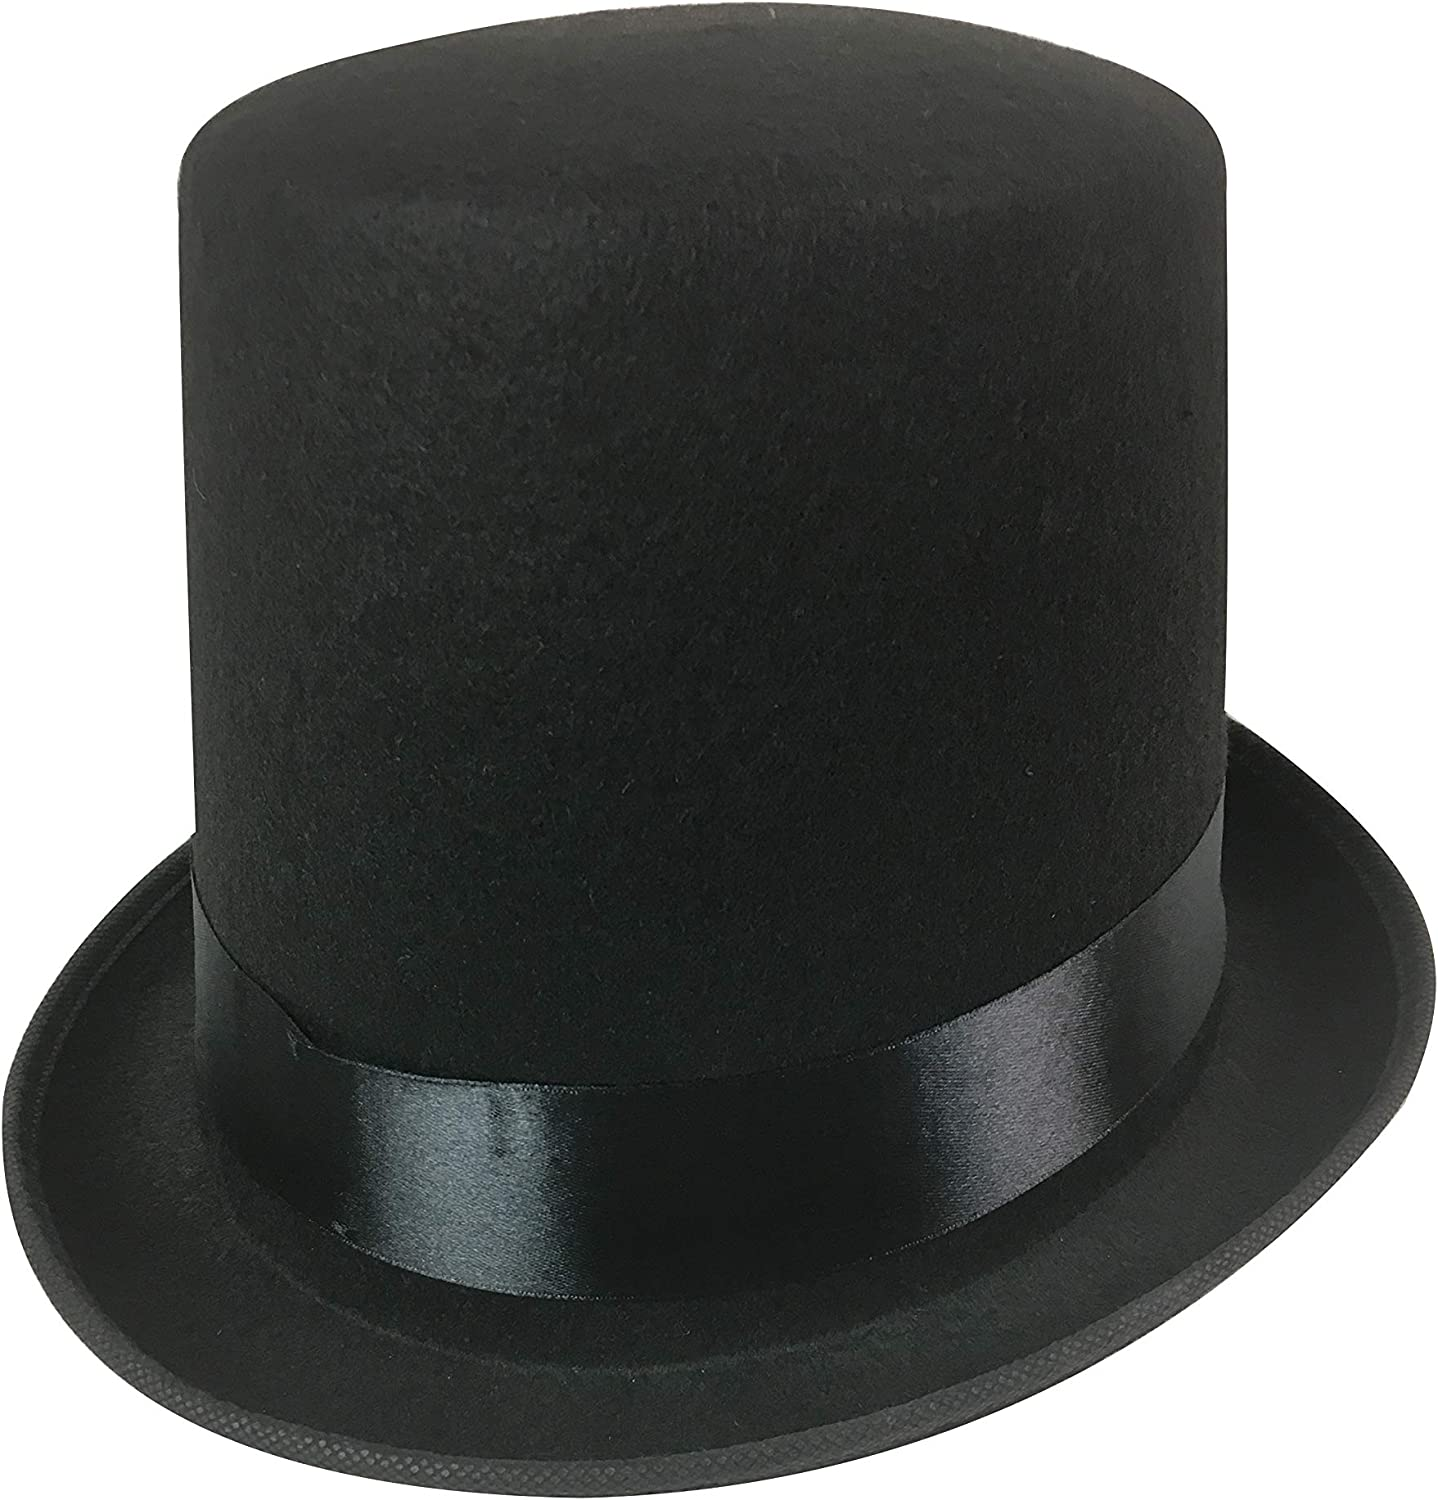 UK Adult Deluxe Black Top Hats Topper Victorian Ringmaster Lincoln Style Magic